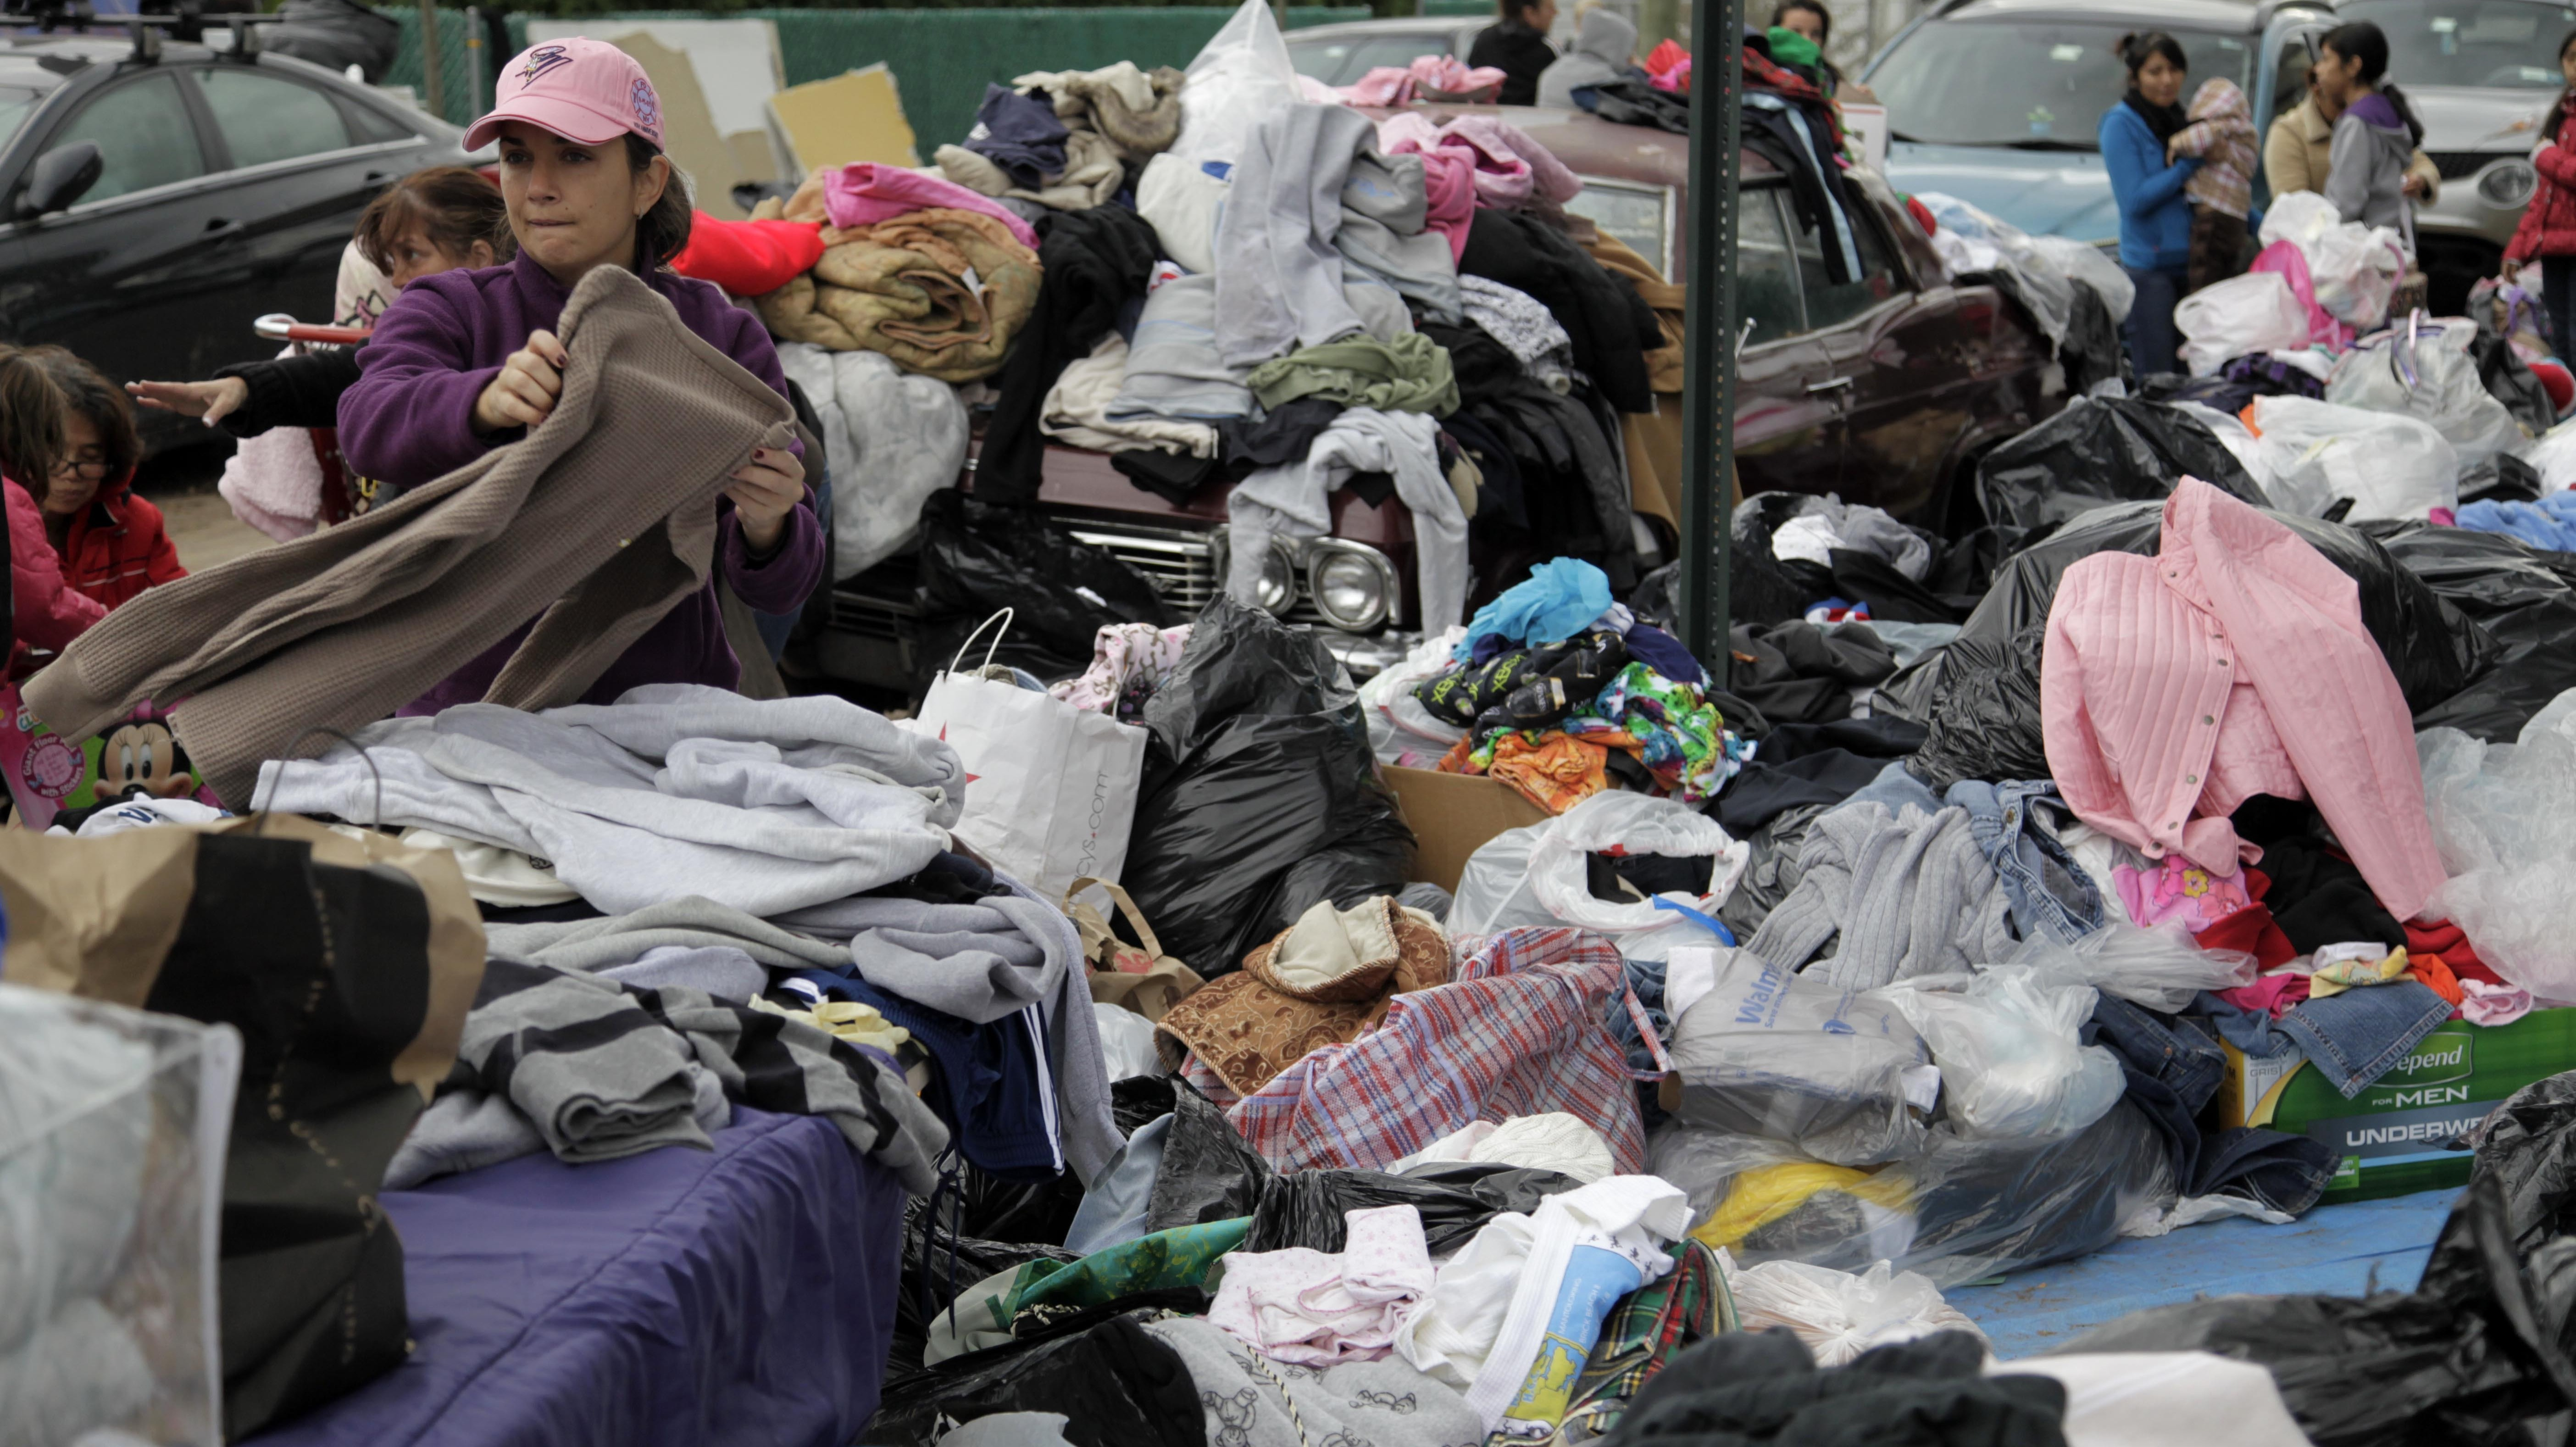 Clothes Medicine And 8 Other Worst Things To Donate